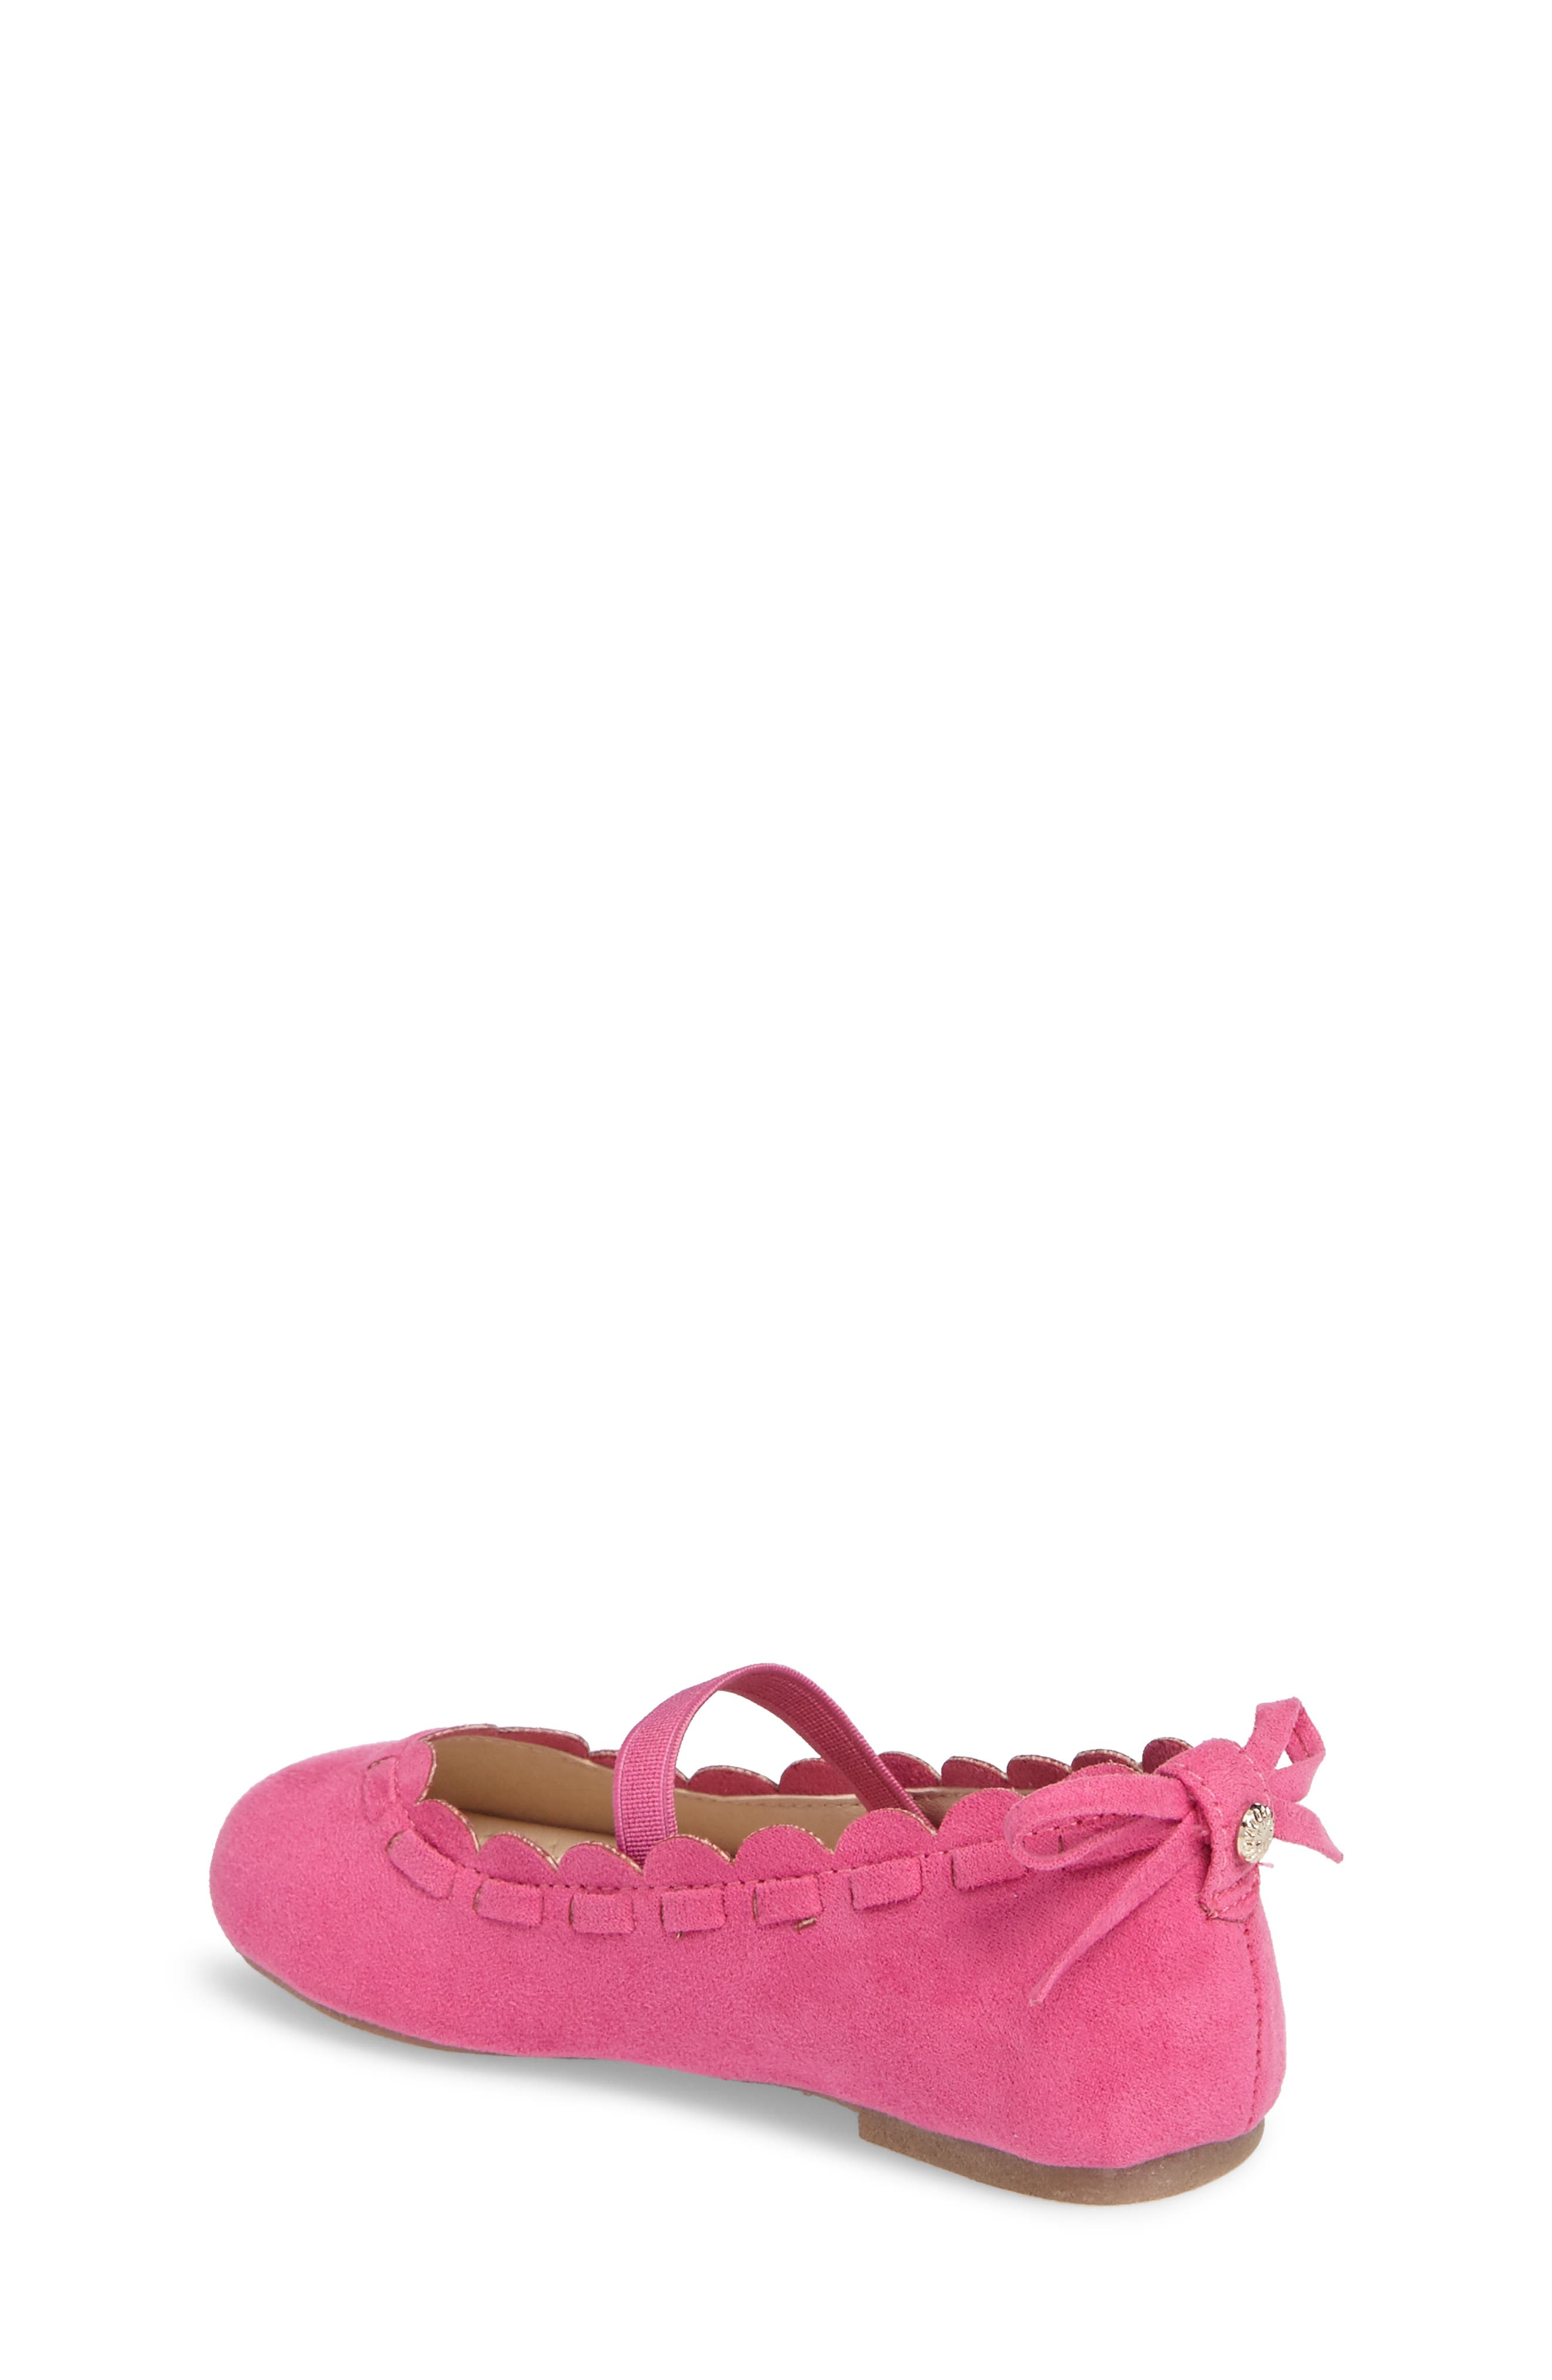 Alternate Image 2  - Jack Rogers Little Miss Lucie Scalloped Mary Jane Flat (Walker & Toddler)